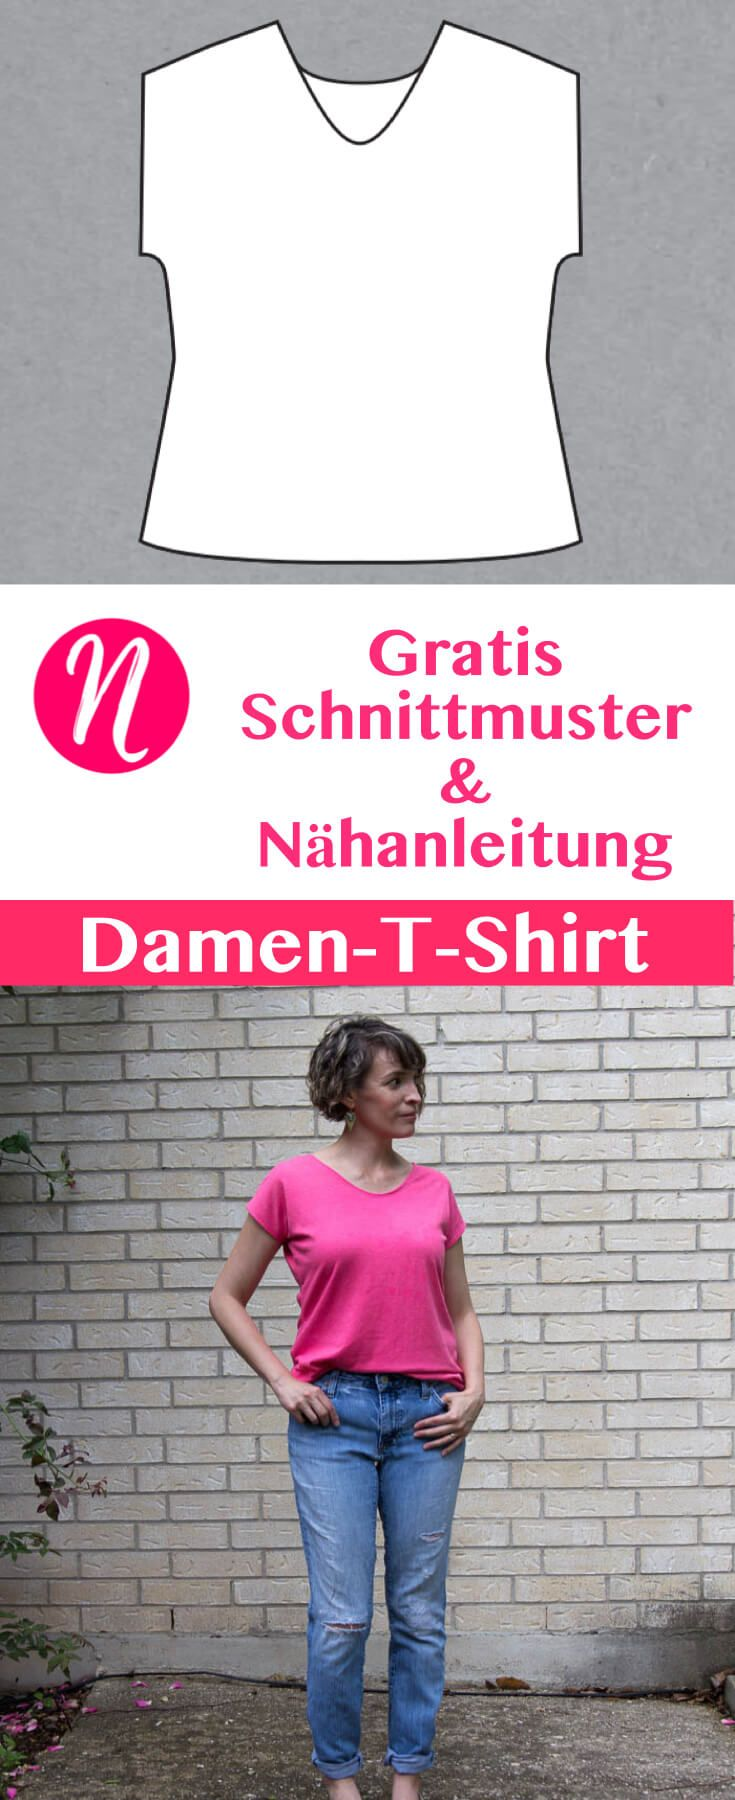 3199 best Schnittmuster images on Pinterest | Sewing ideas, Sewing ...